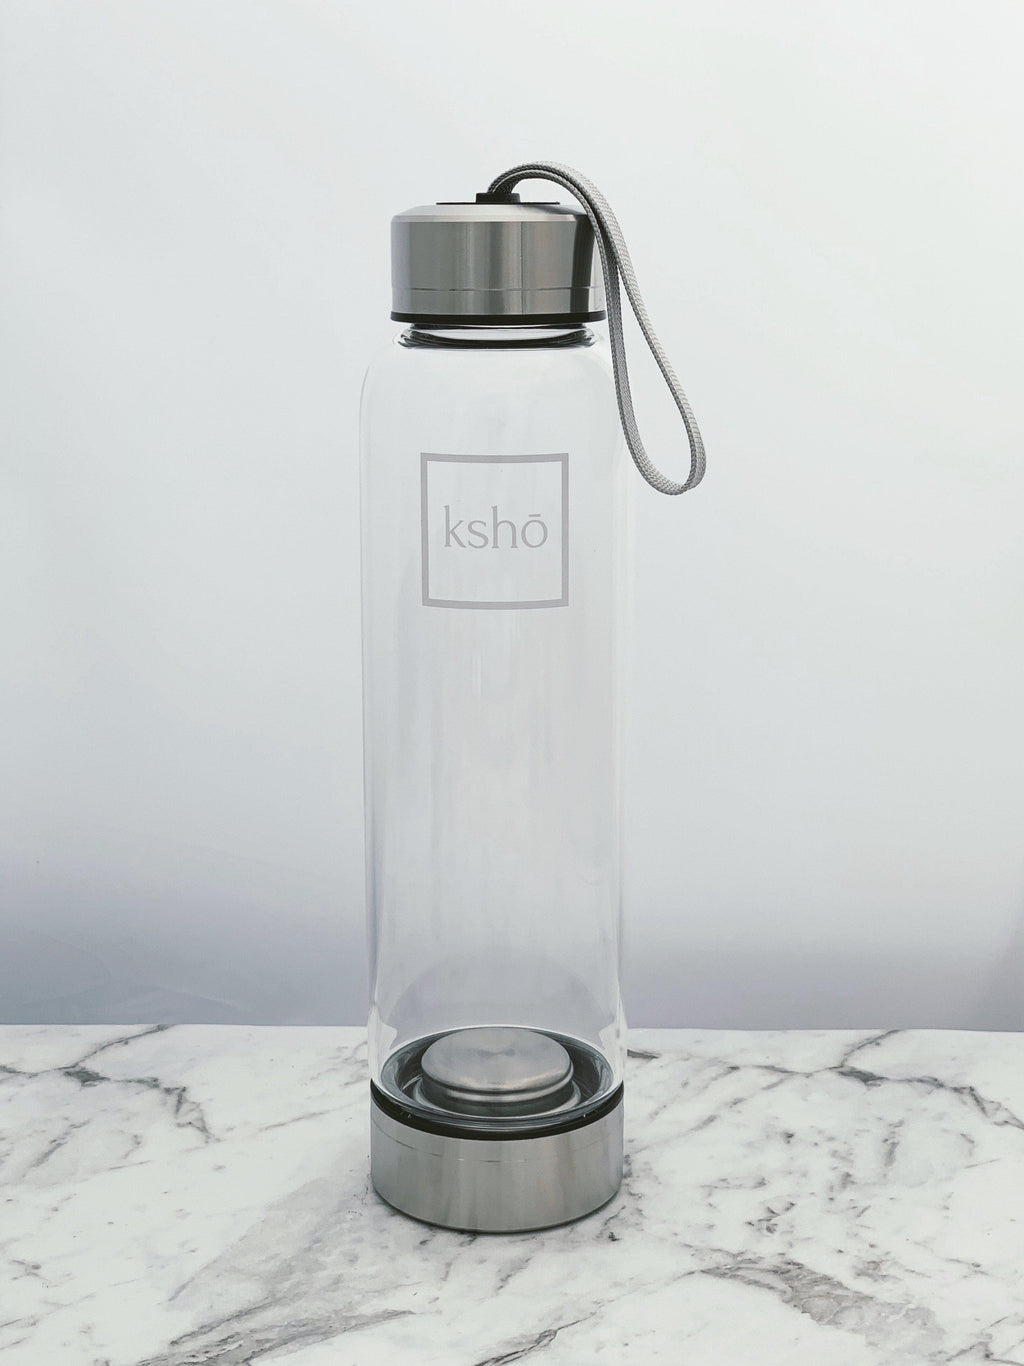 Premium KSHO Glass Bottle - Silver